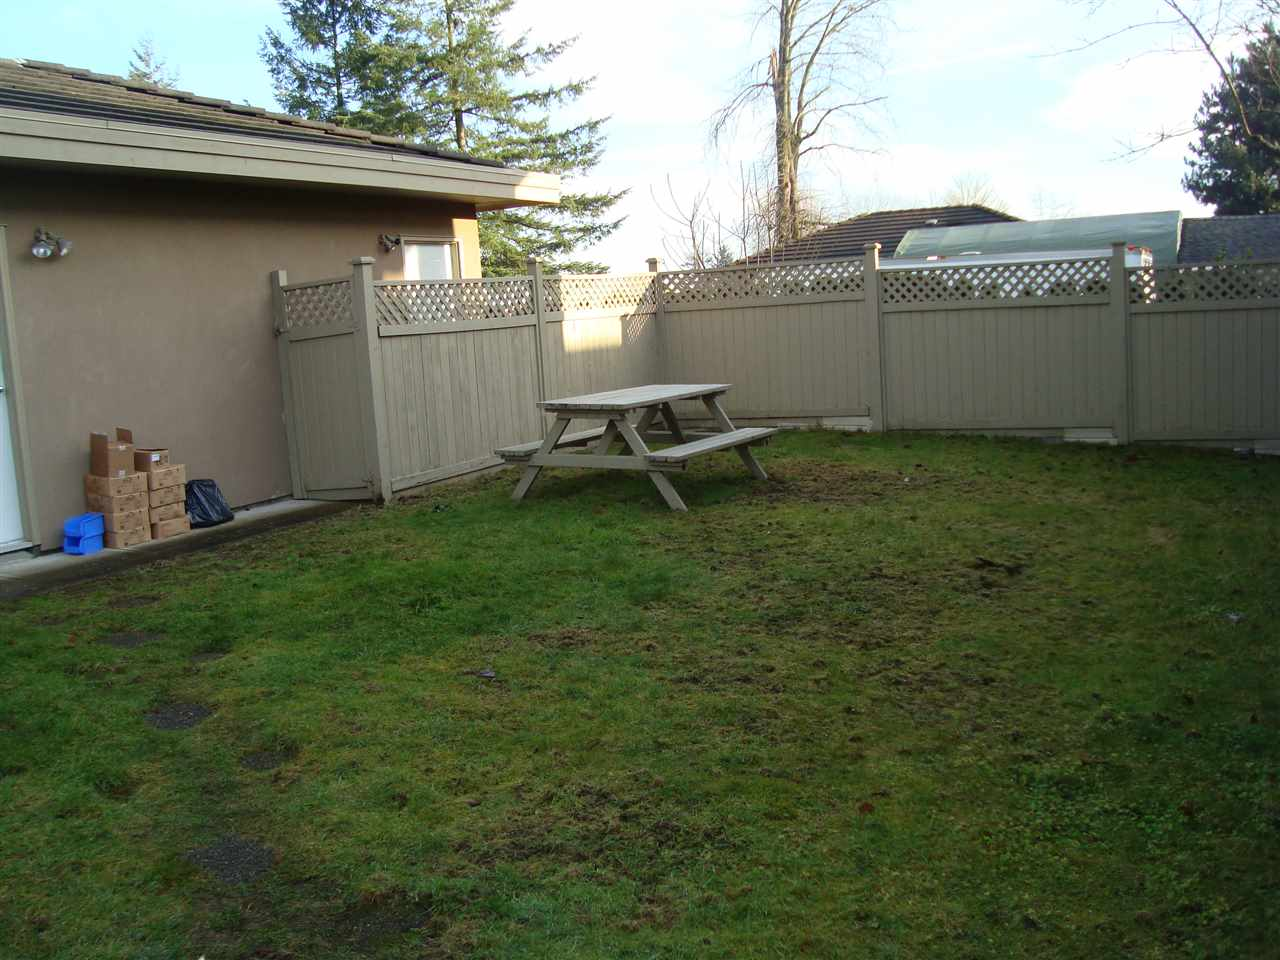 Photo 13: 7562 16TH Avenue in Burnaby: Edmonds BE House 1/2 Duplex for sale (Burnaby East)  : MLS® # R2022922